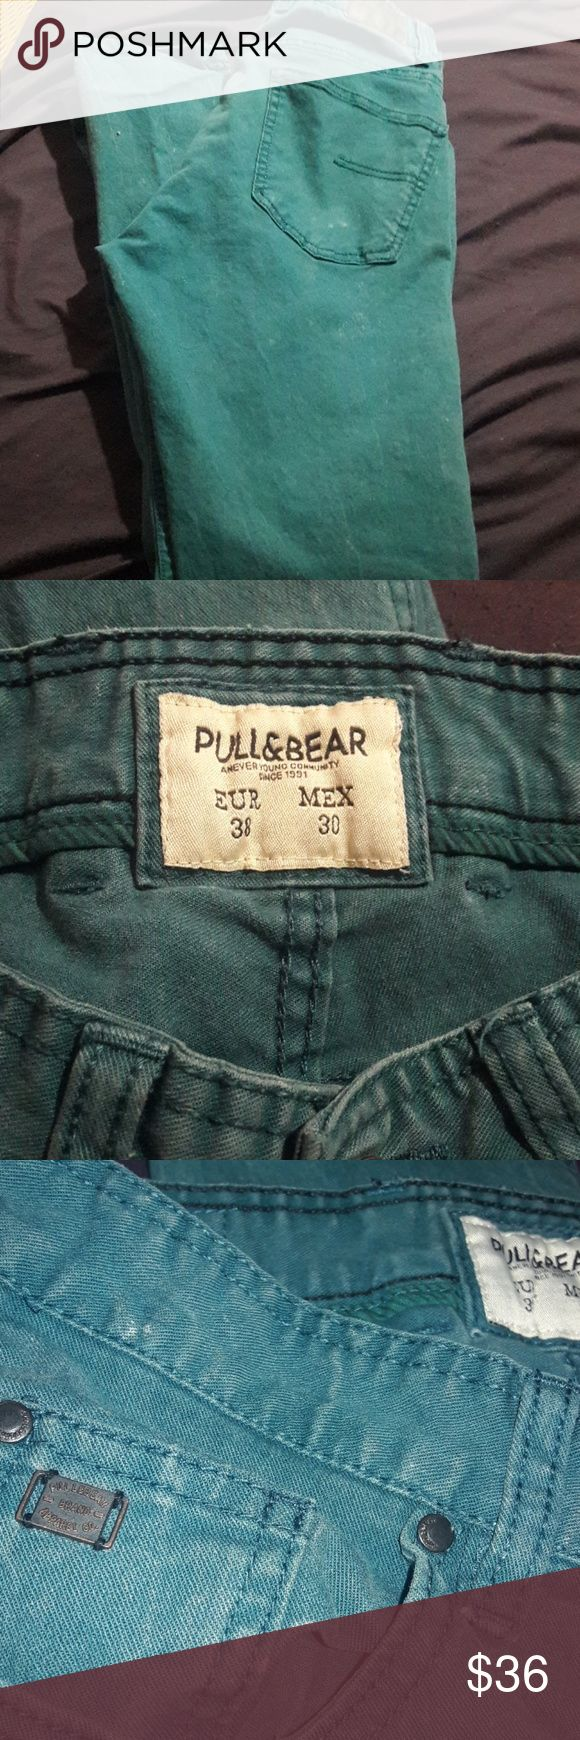 Skinny jeans pull & bear Size 38 usa 6size Faded turquoise blue used looking skinny jeans  Skinny fit Still in good condition Pull&Bear Jeans Skinny